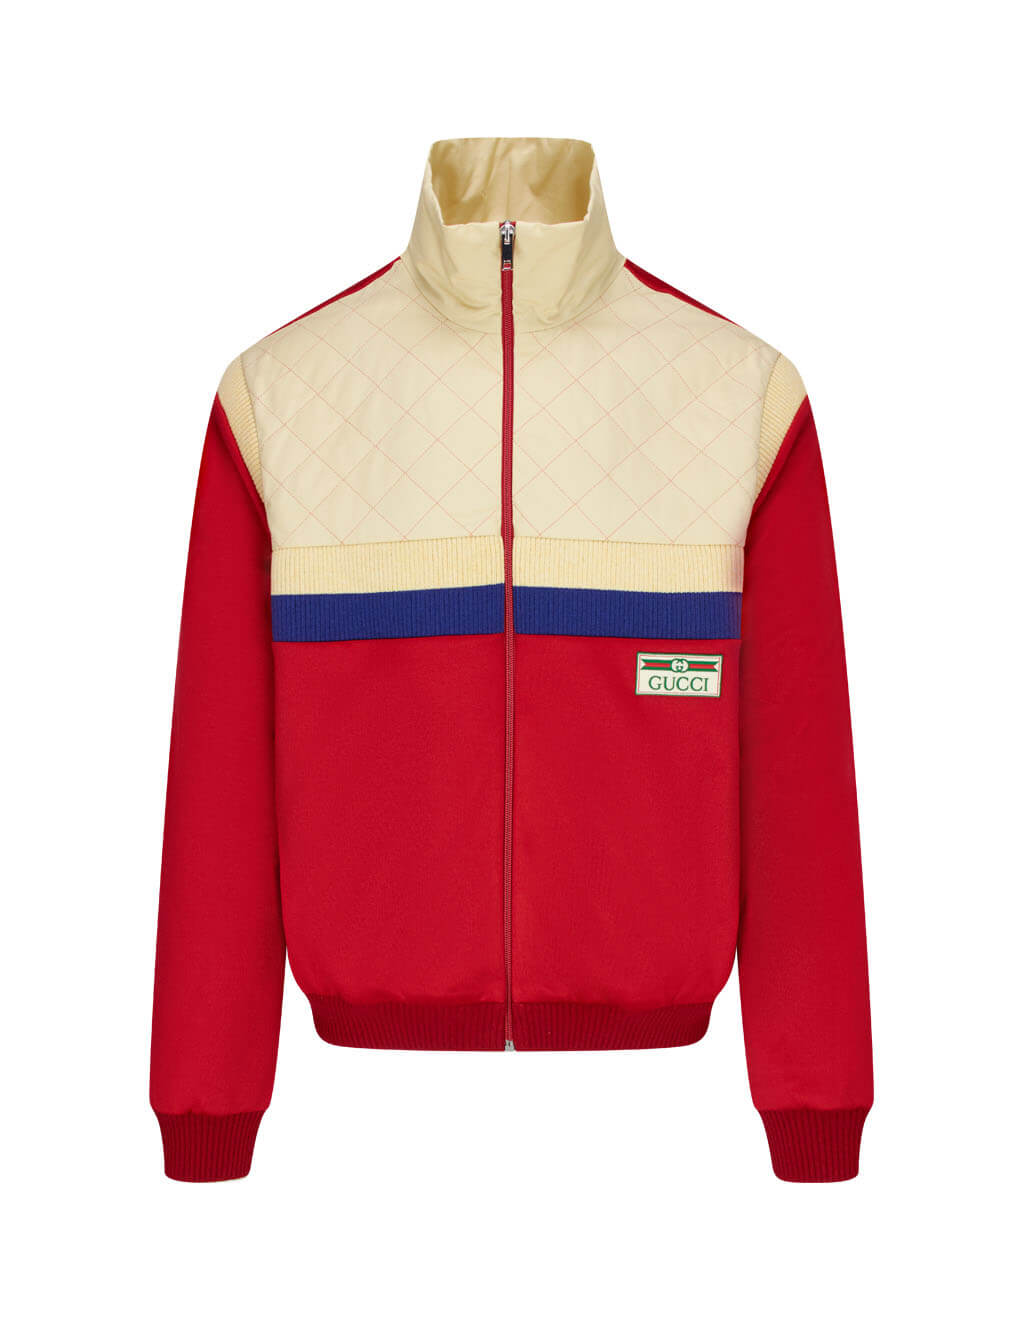 Men's Gucci Technical Jersey Jacket in Live Red. 625287XJCNI6678